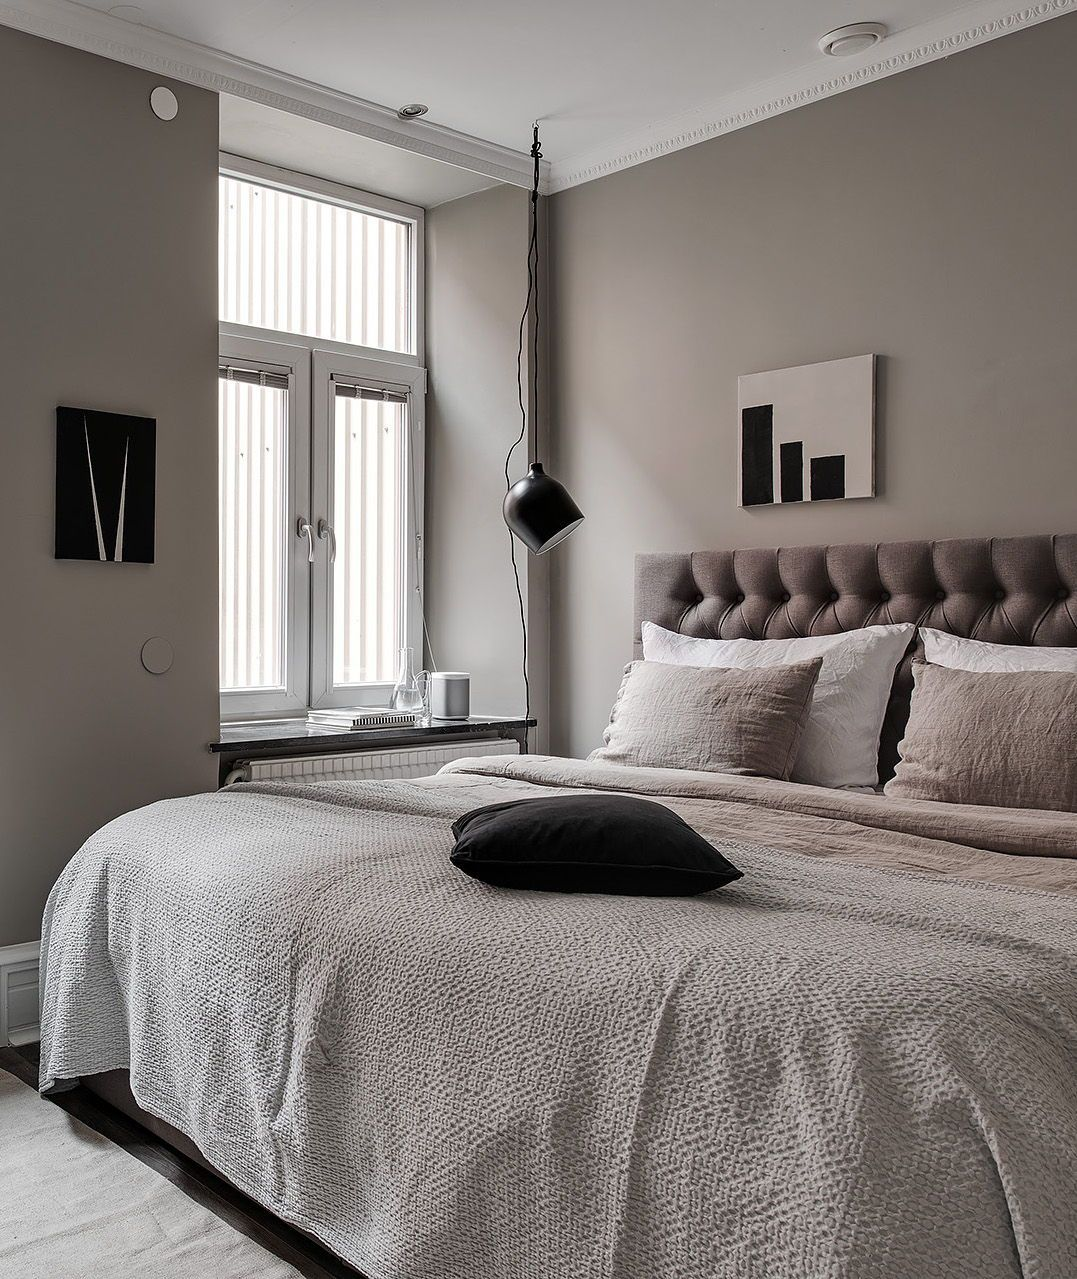 Elegant Home In Deep Grey With Images Bedroom Interior Home